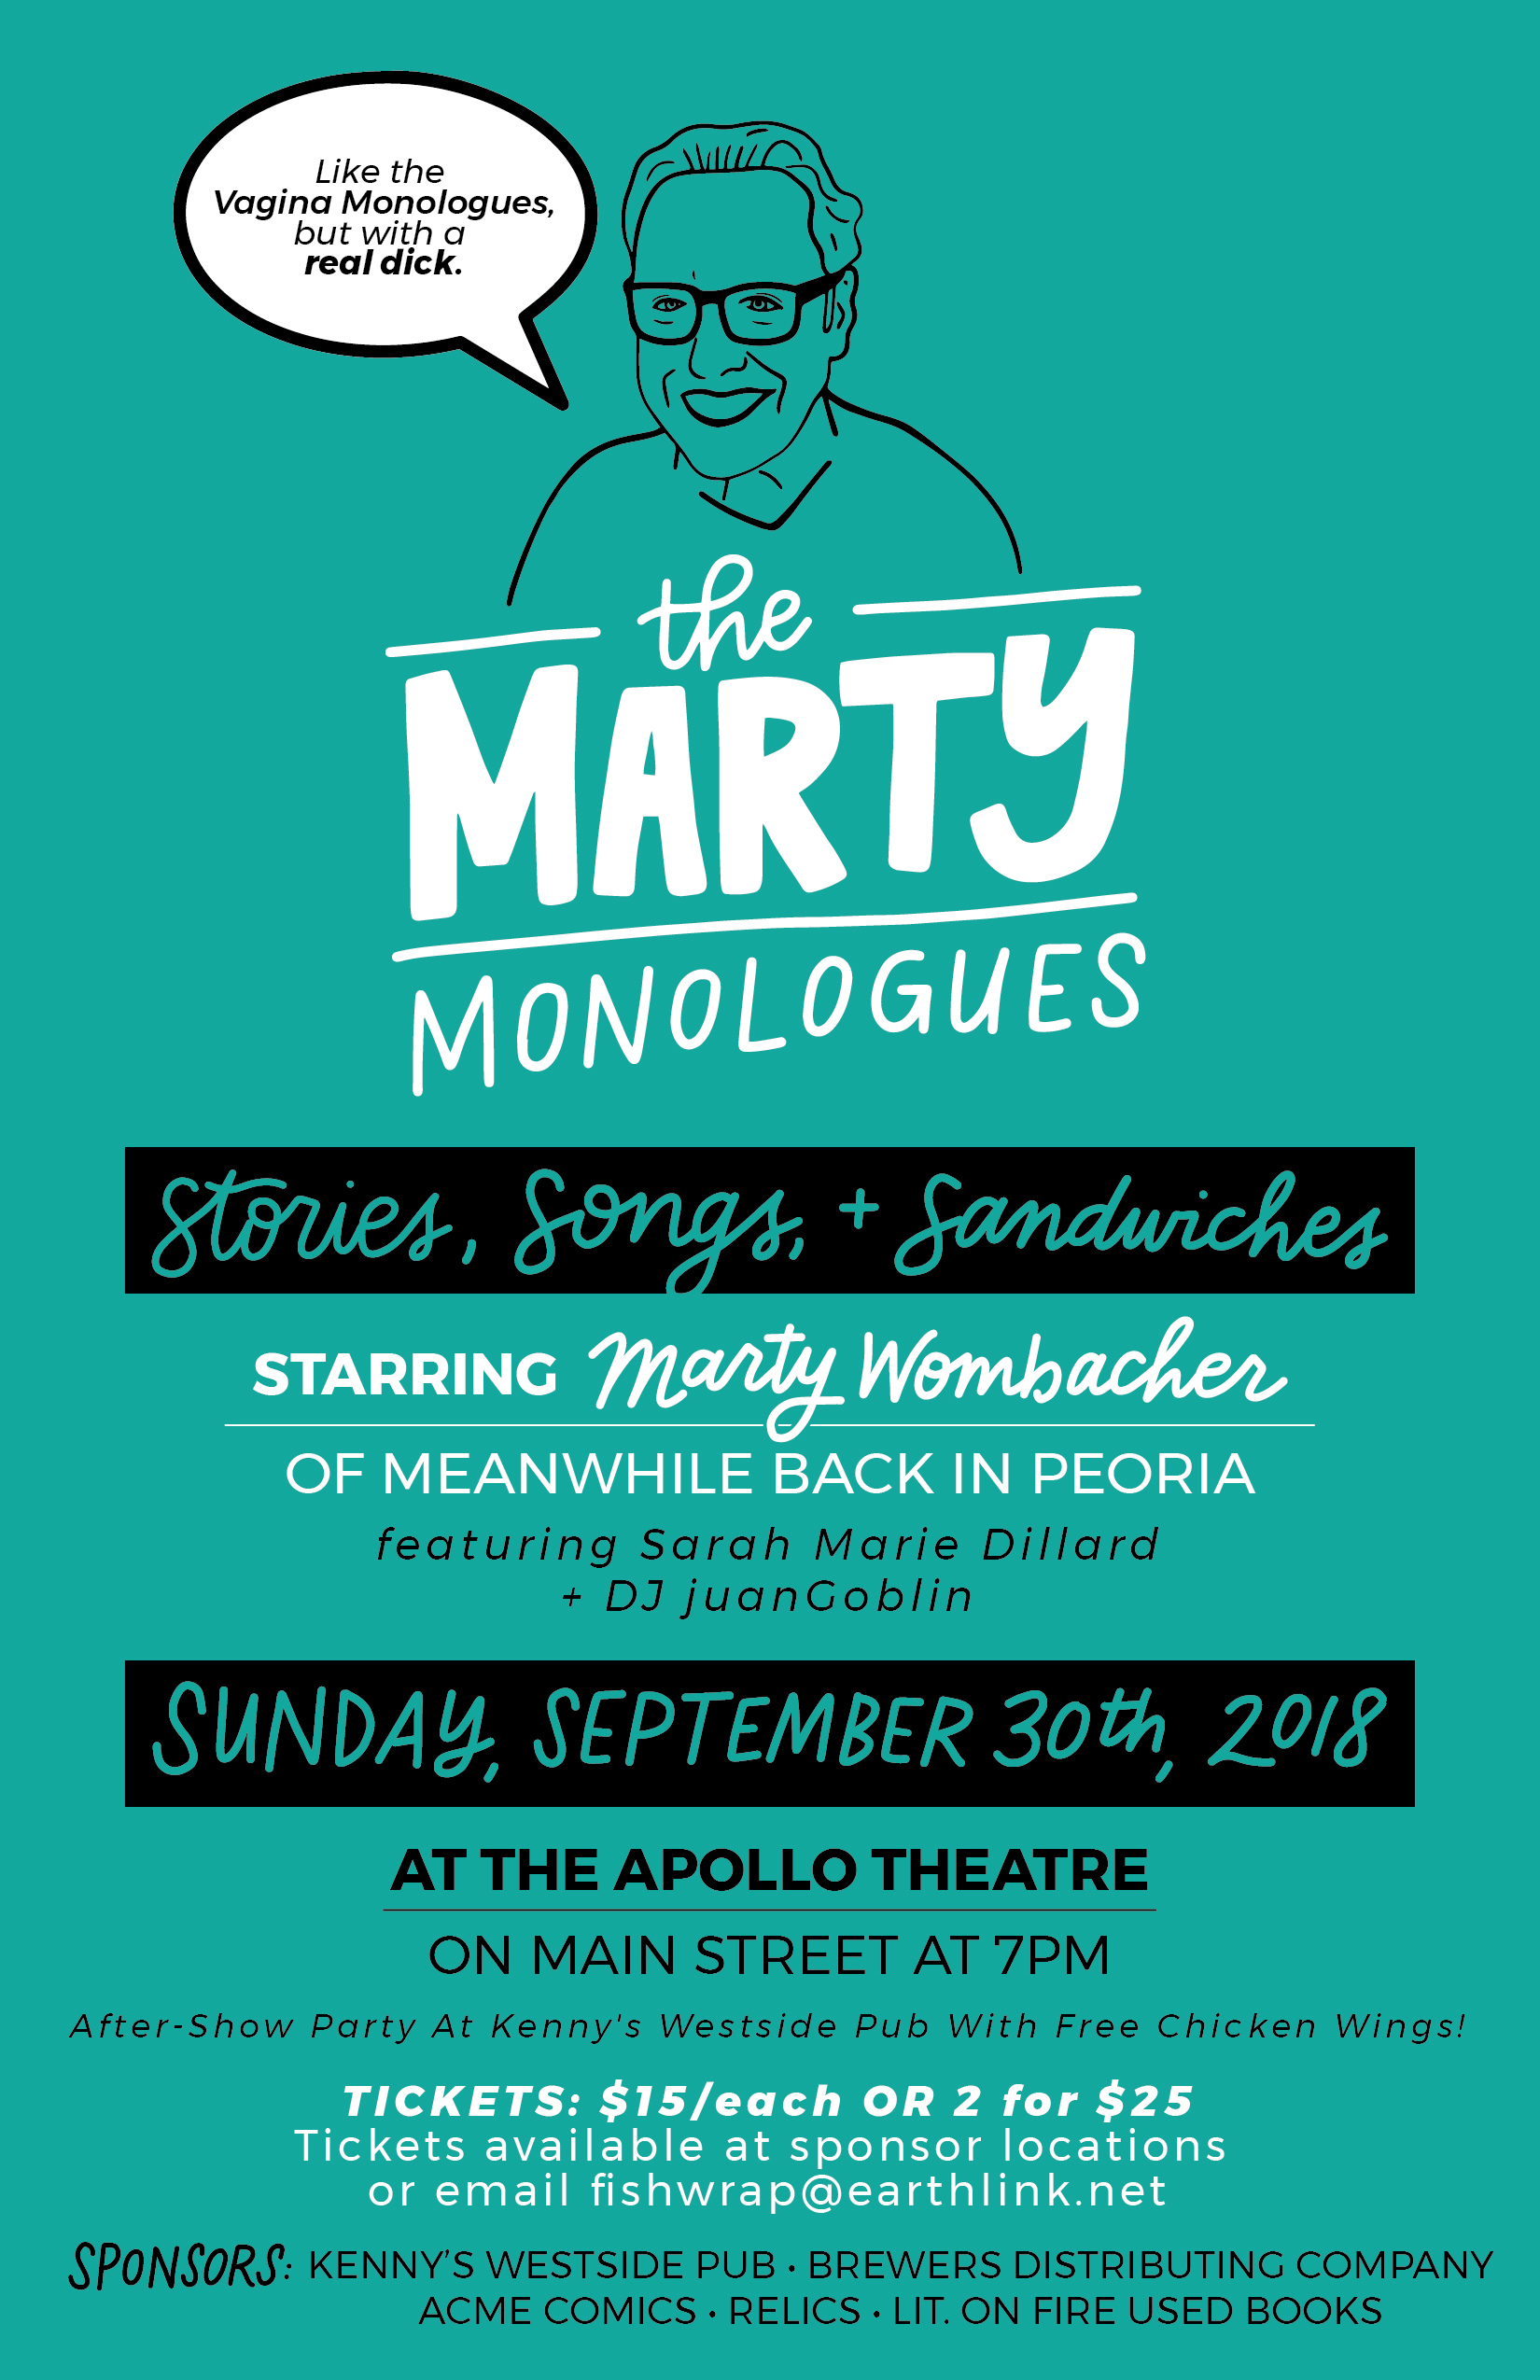 The Marty Monologues - Stories, Songs, and Sandwiches - Poster Design